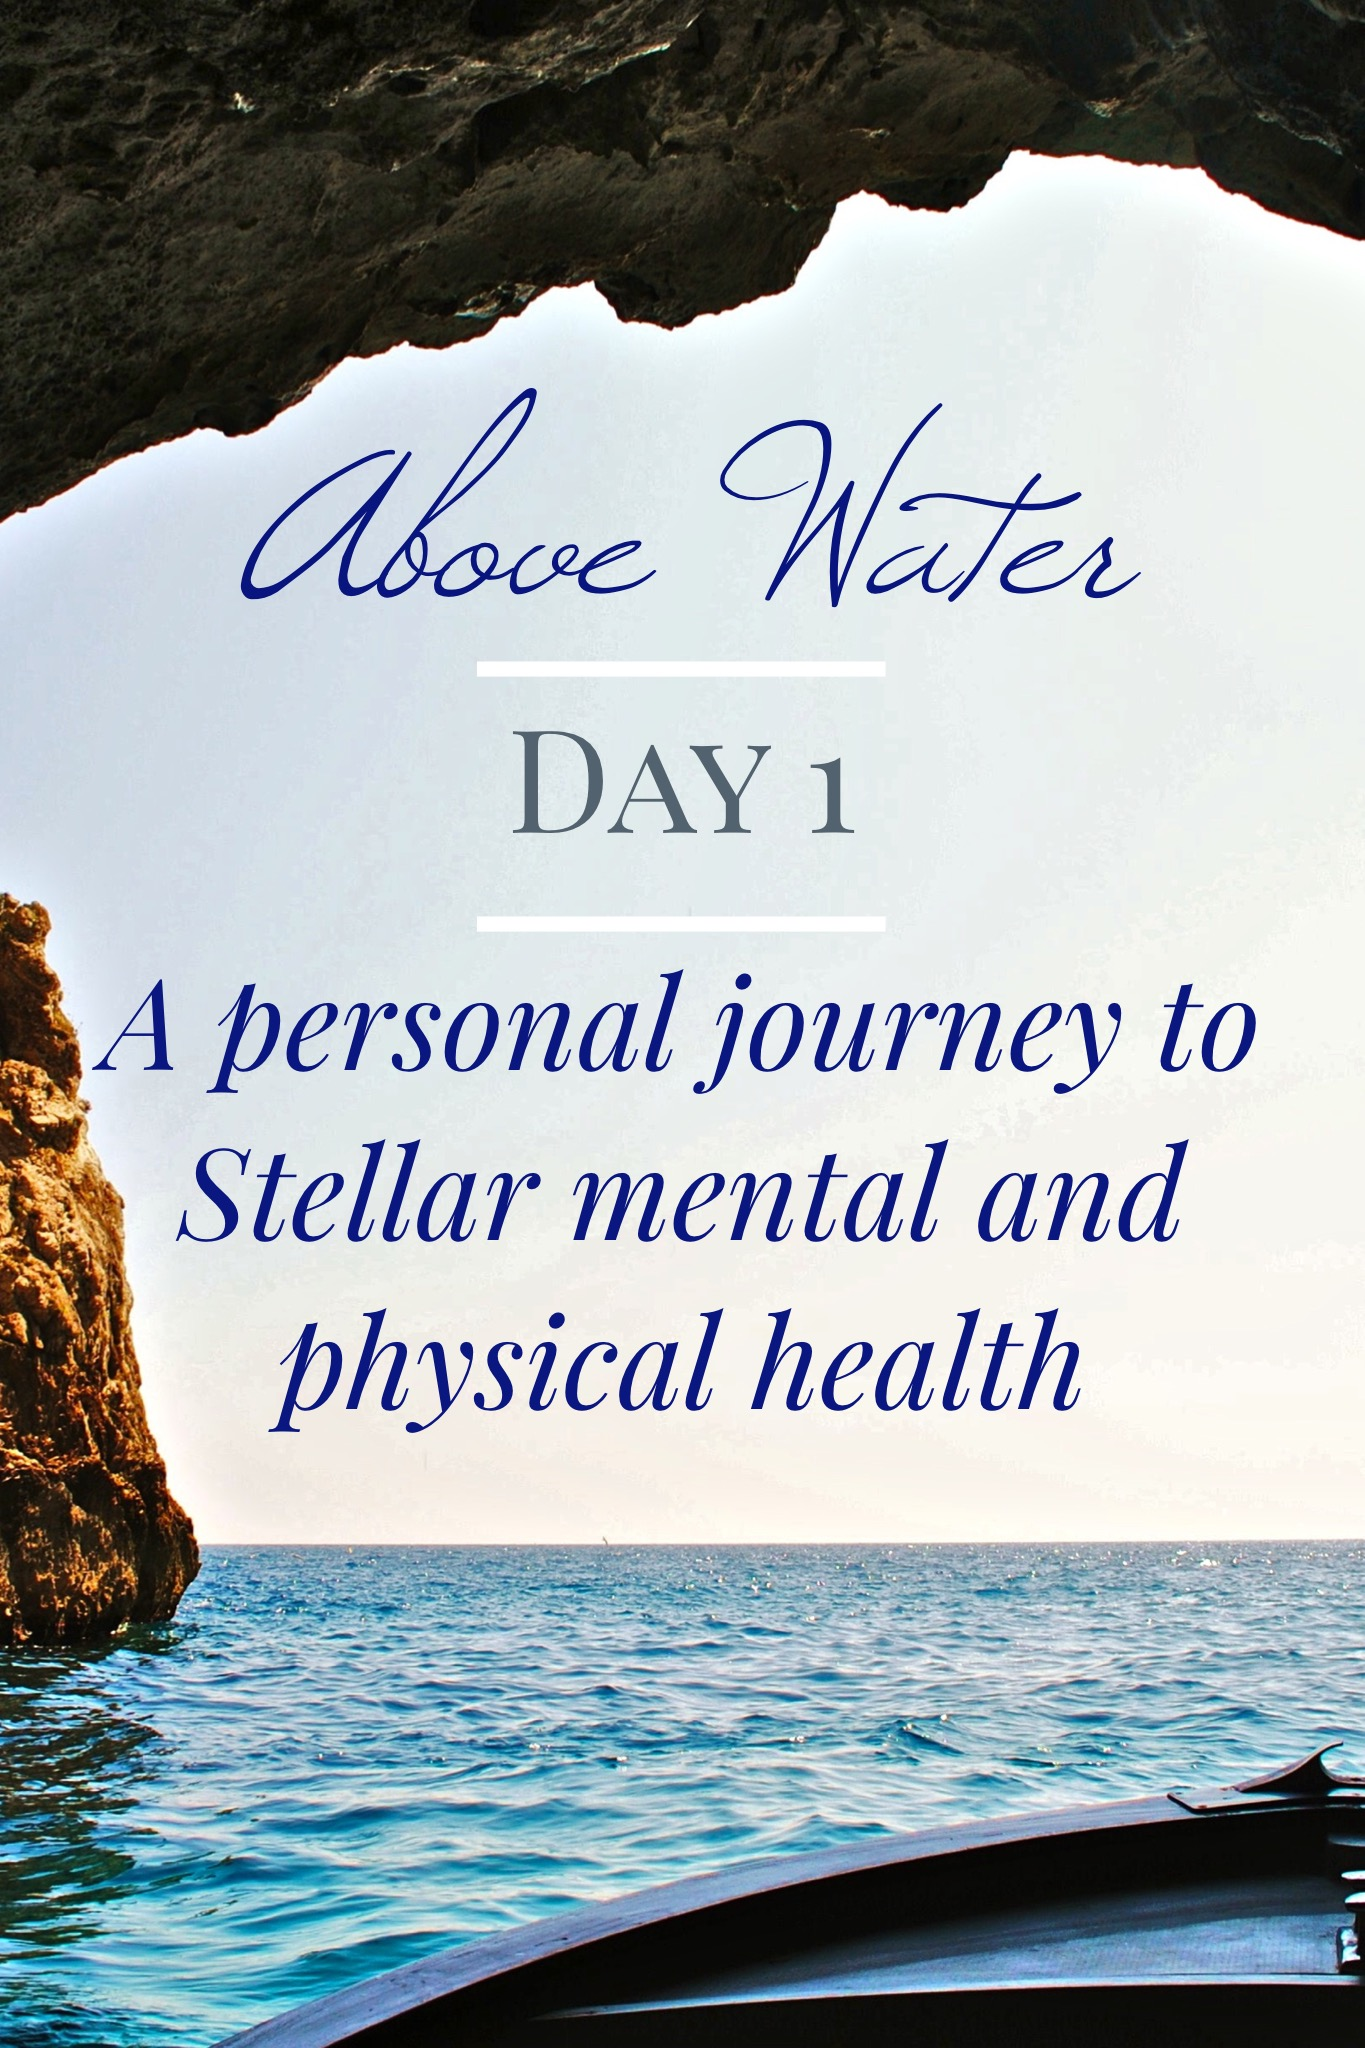 How  to start on a total physical and mental health journey. Day 1